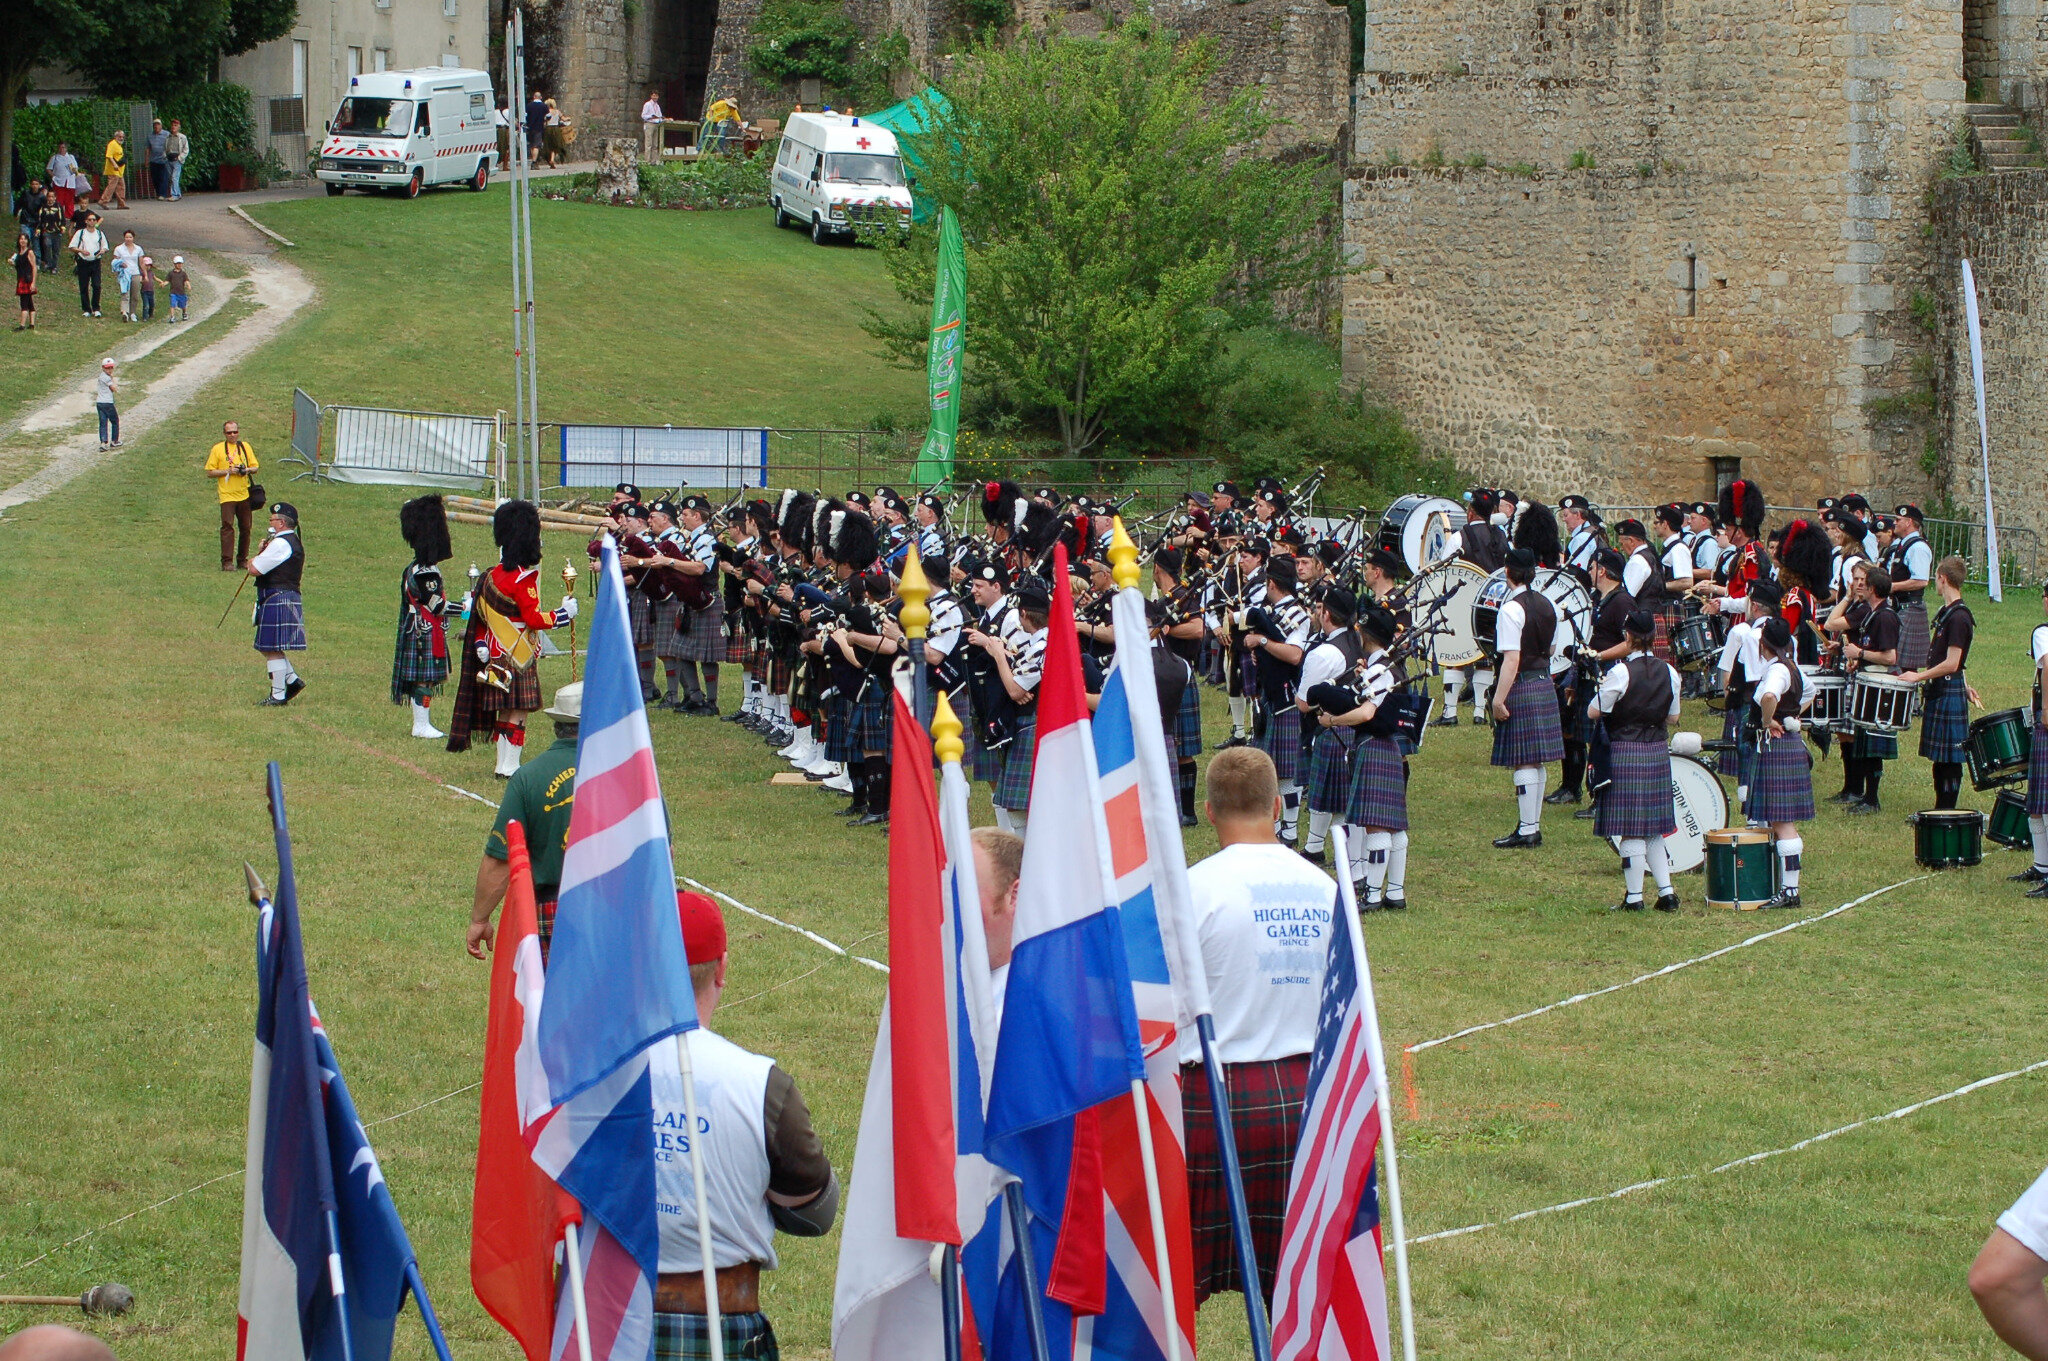 The line-up for the IHGF amateur Worlds in Bressuire, France